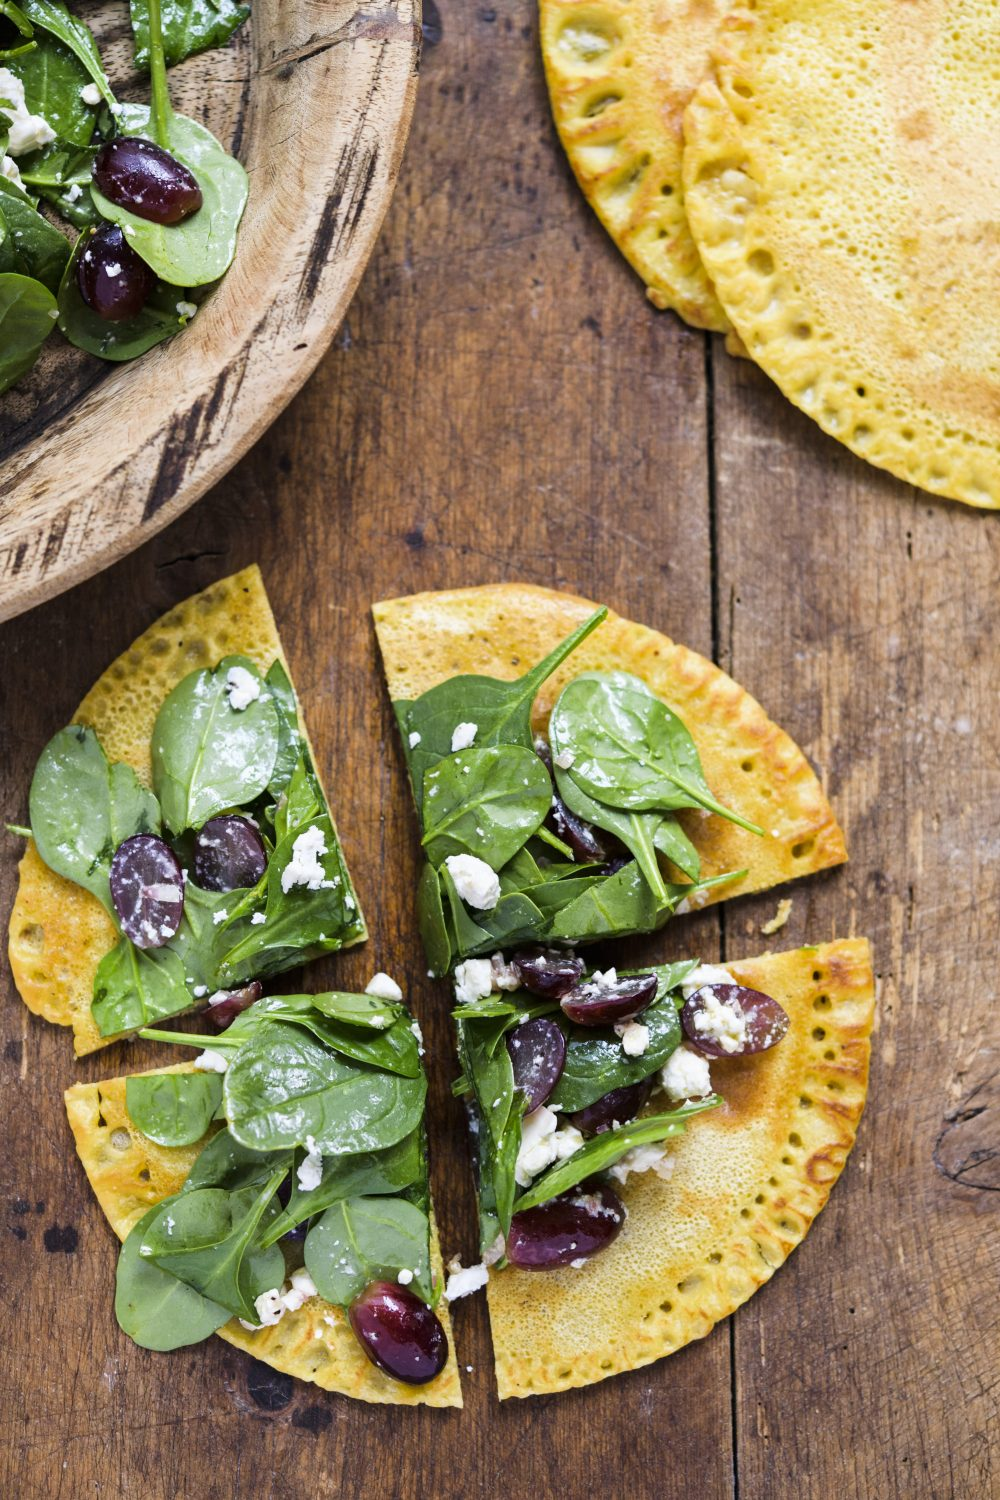 Spinach, Grape and Feta Salad